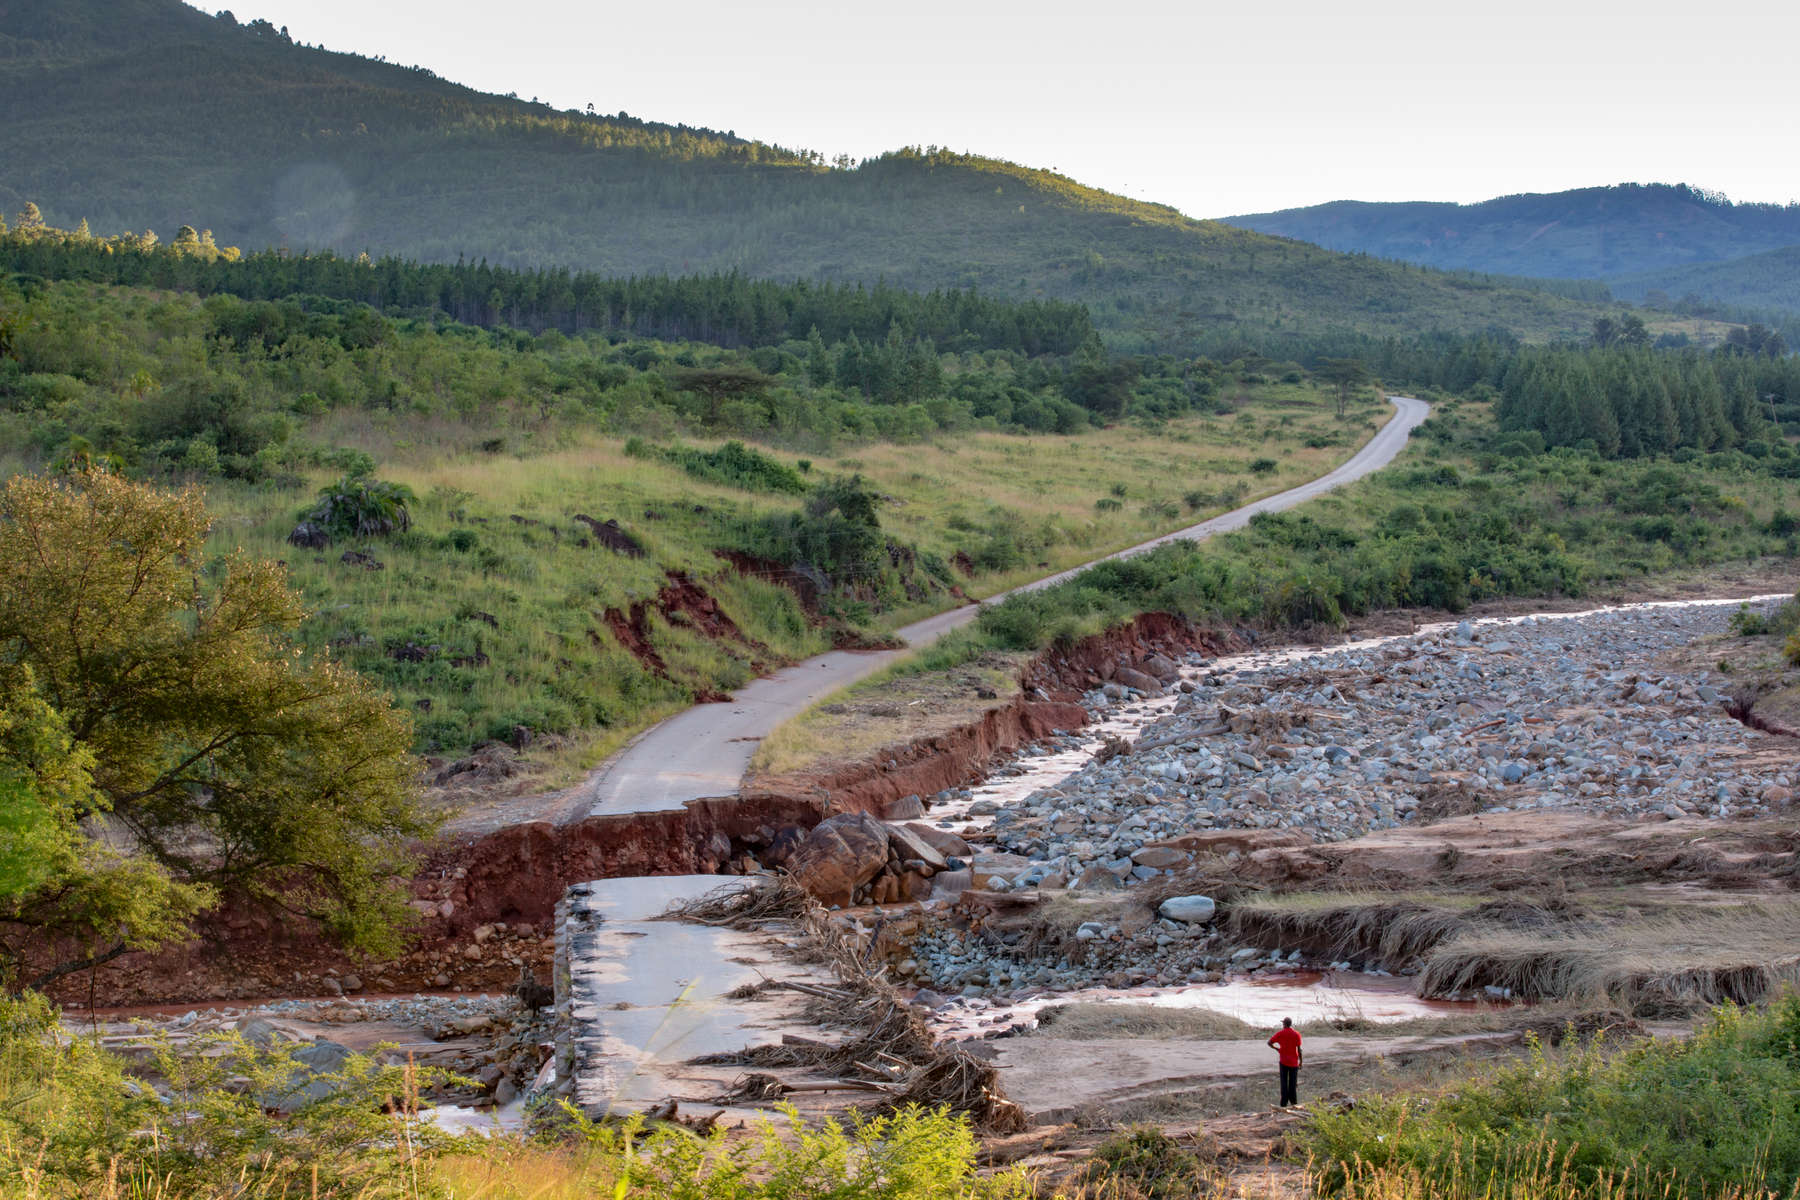 A damaged bridge on the road to Ngangu. This is the first cyclone in more than a decade to strike Zimbabwe. Strong winds and heavy rains particularly in Chimanimani and Chipinge districts have resulted in flash floods and destruction of infrastructure including houses, bridges, schools and utility lines.